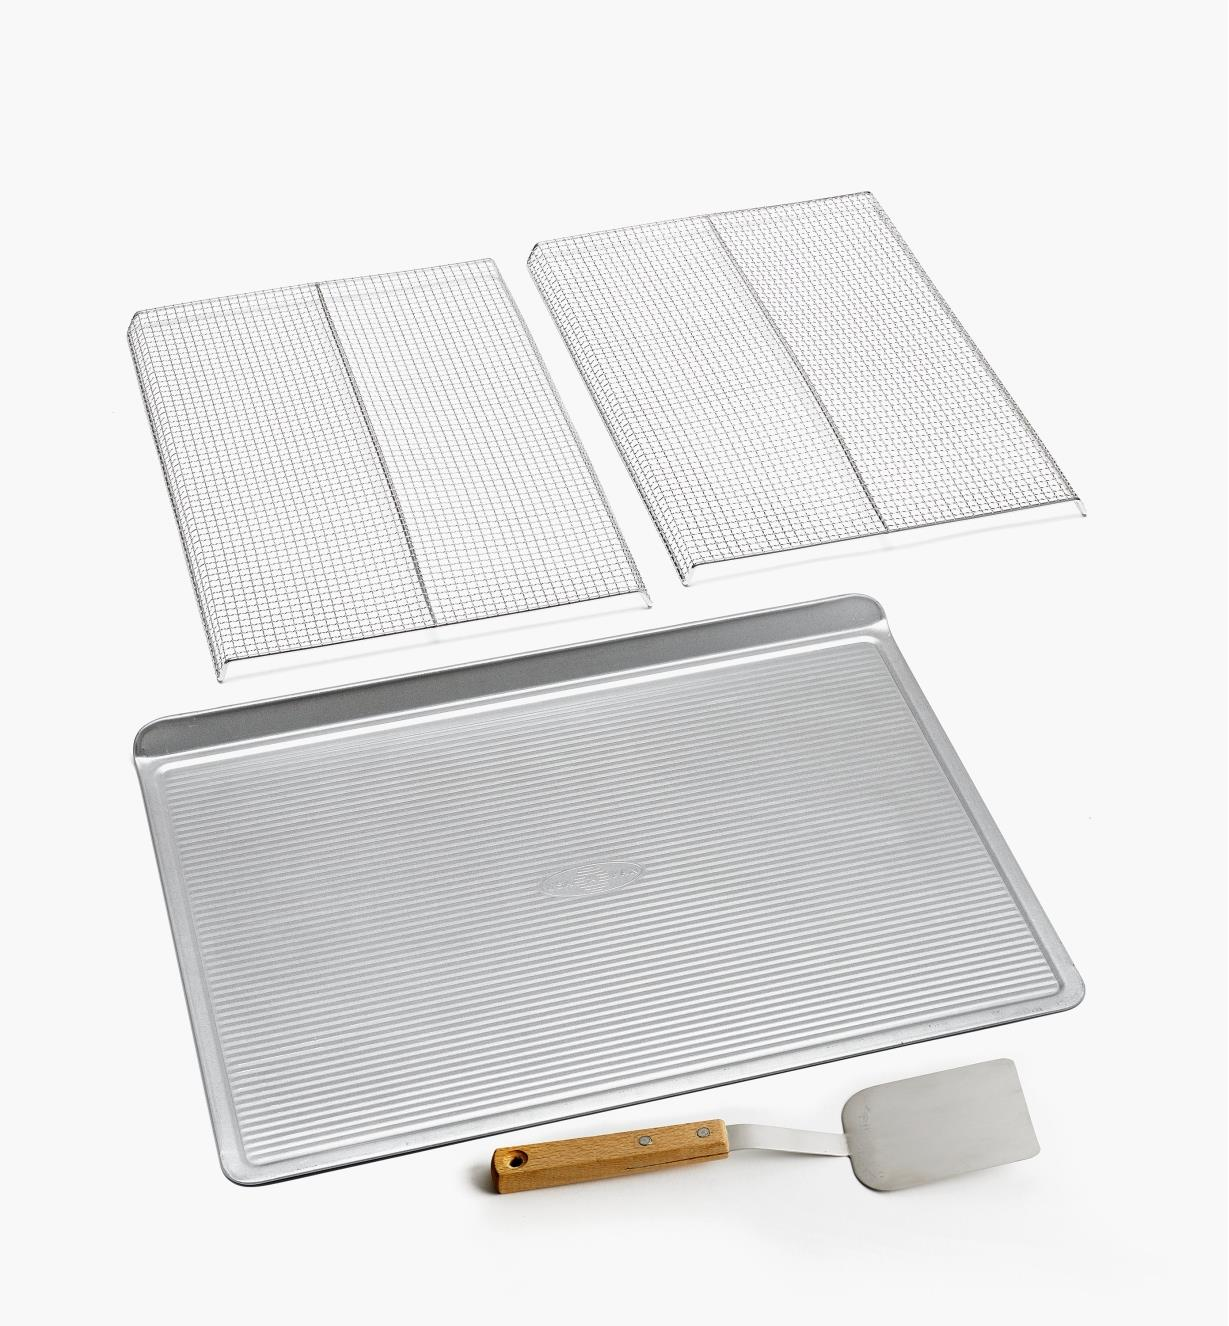 EV689 - Cookie-Baking Set